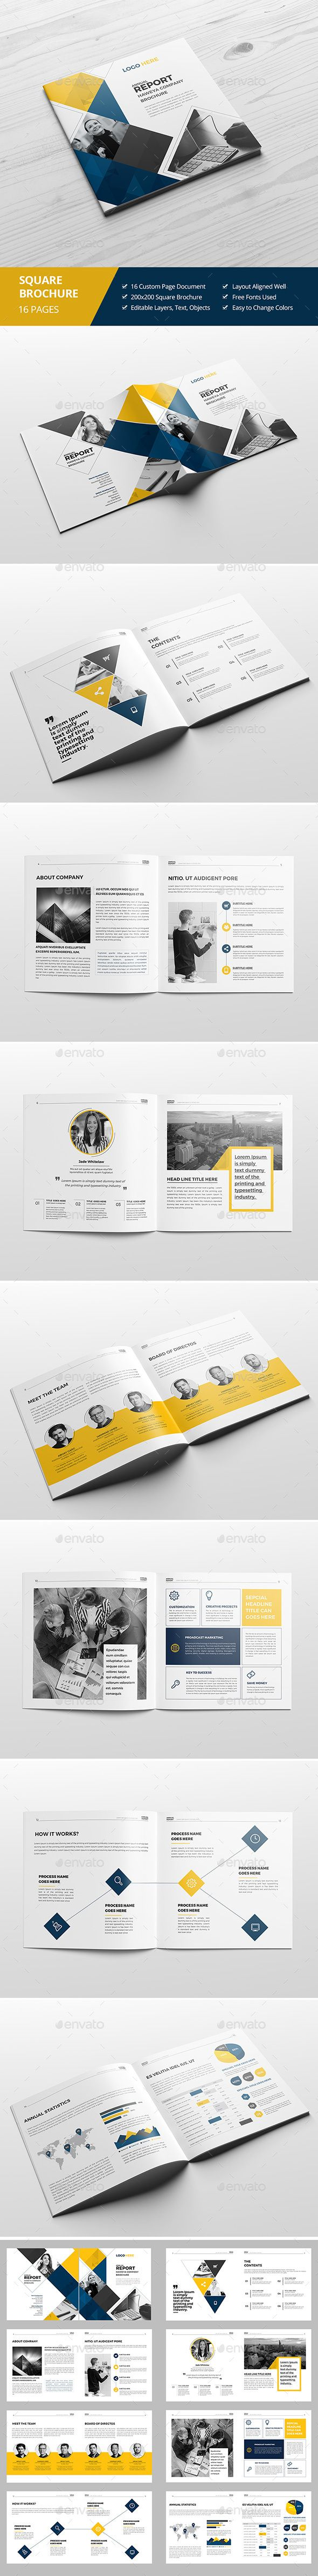 Haweya Square Brochure Template 	InDesign INDD